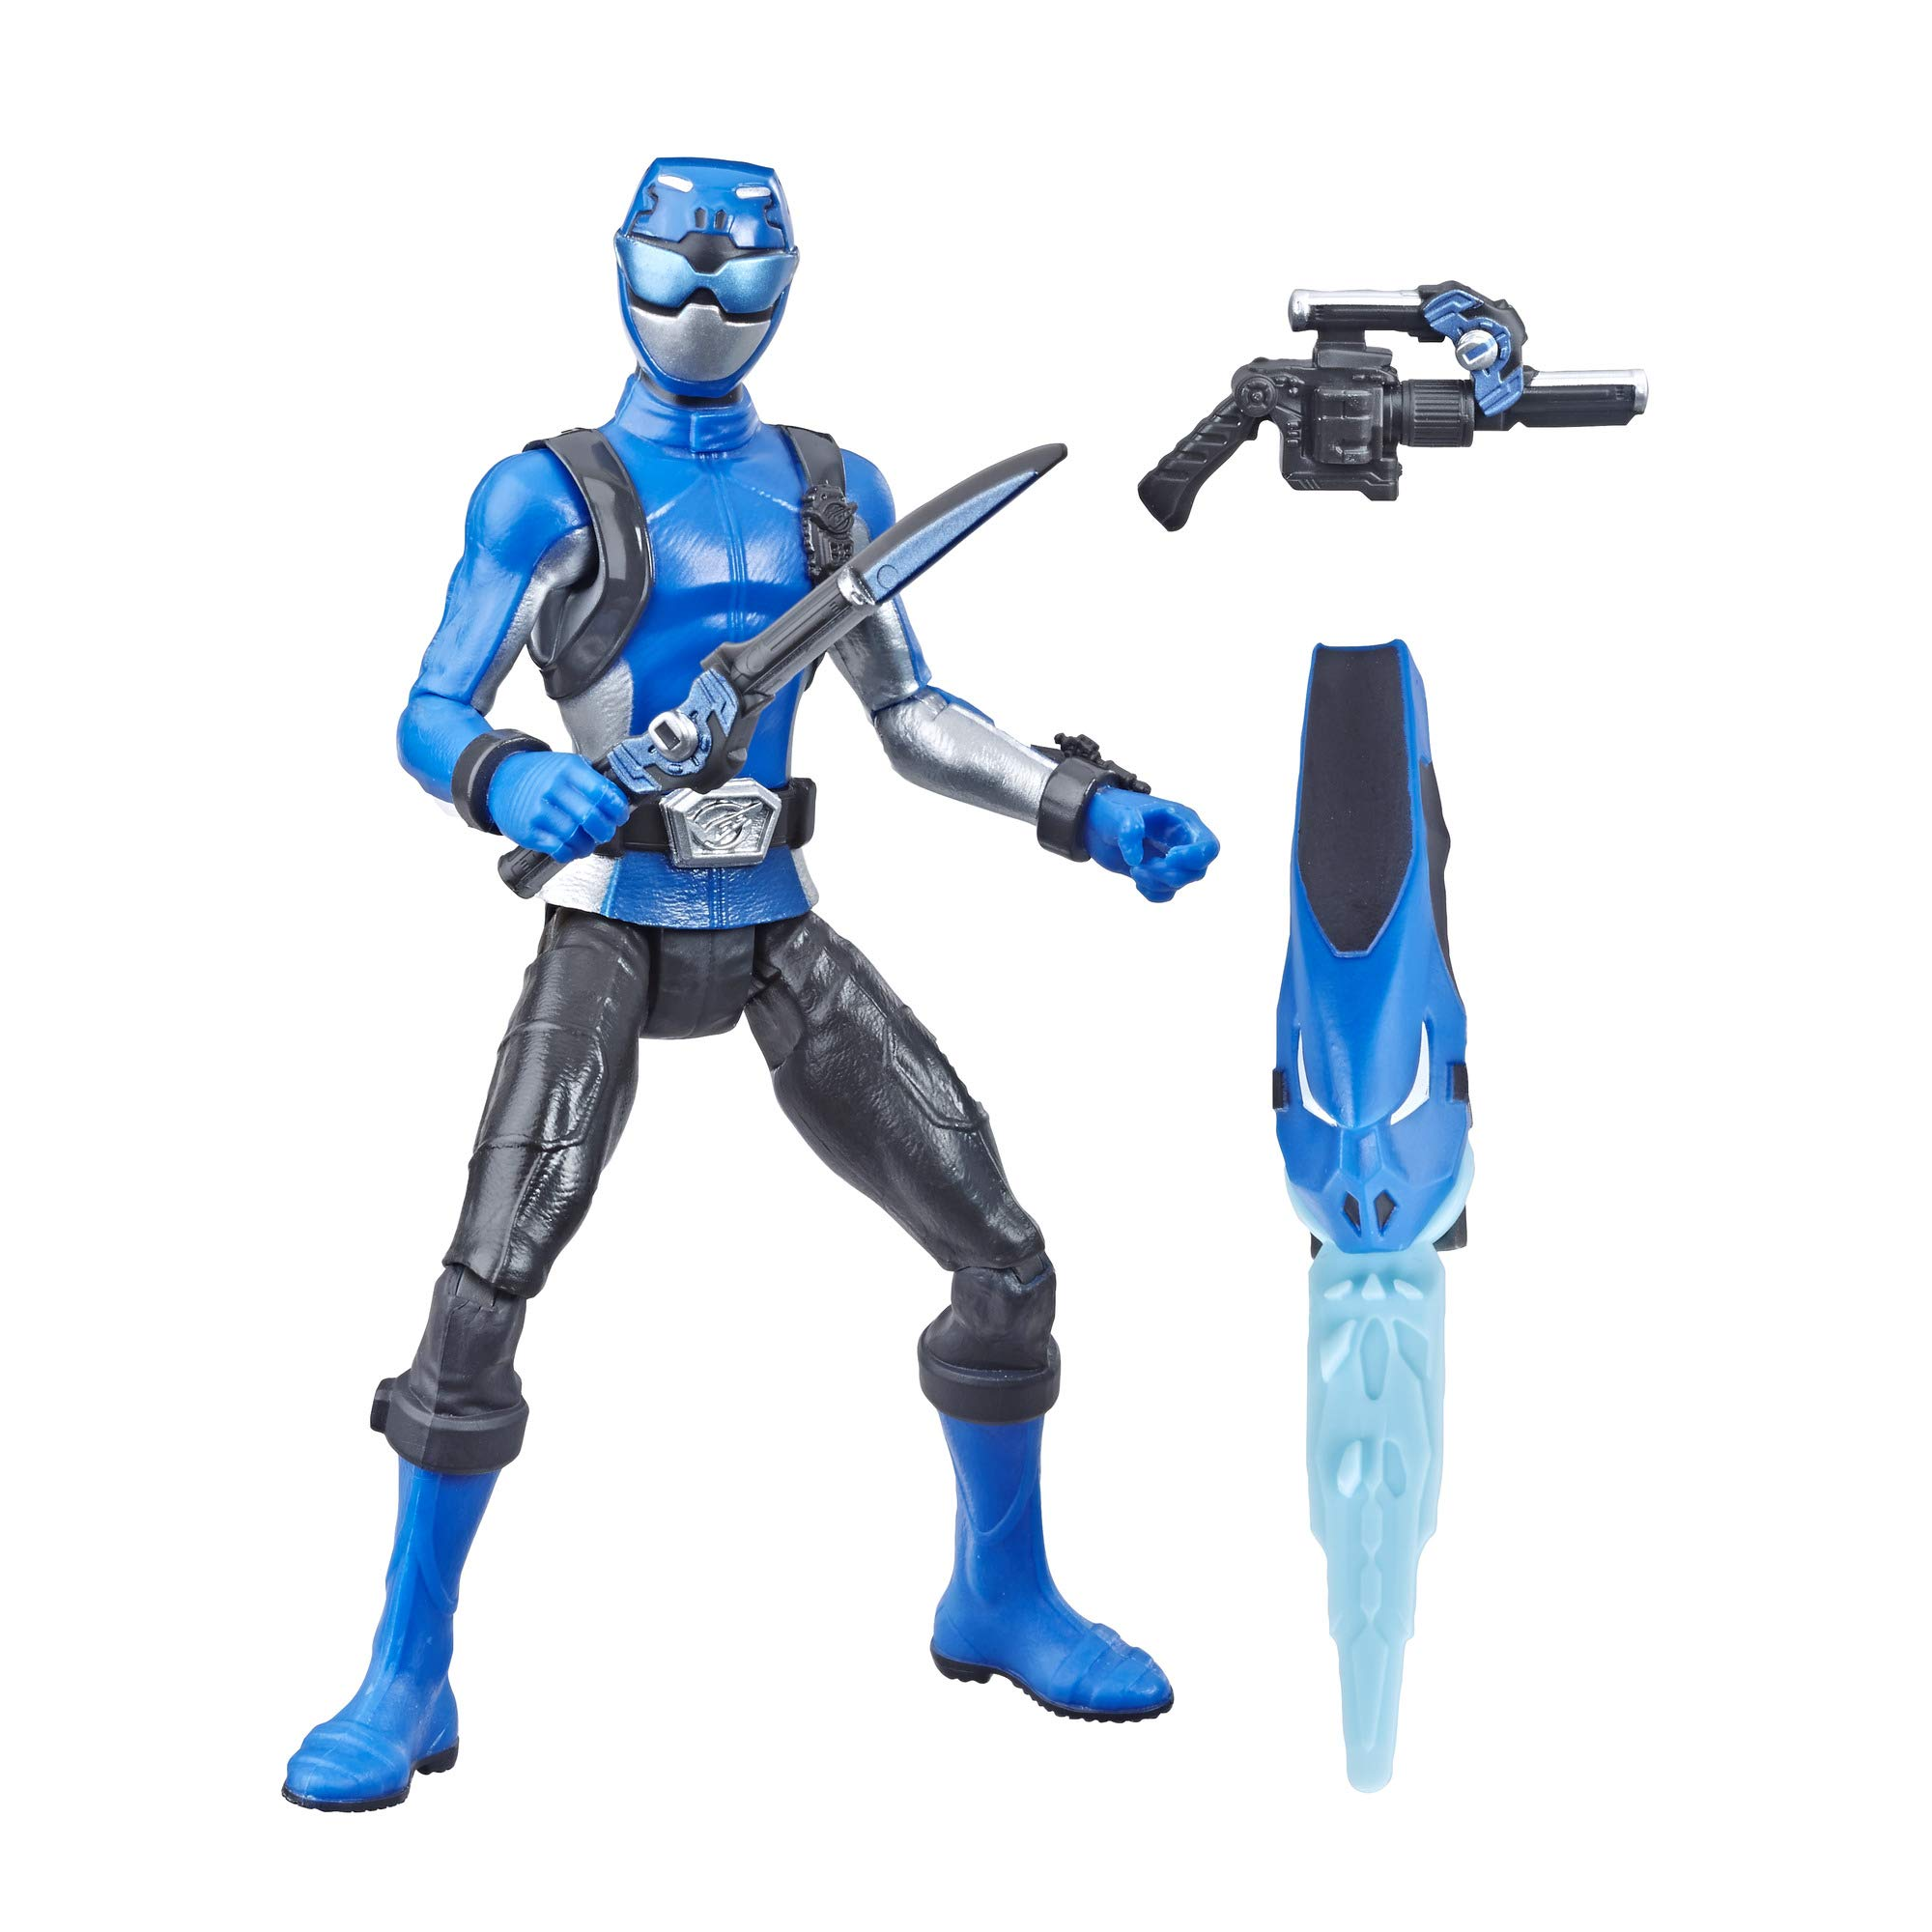 "Power Rangers Hasbro Beast Morphers Blue Ranger 6"" Action Figure Toy Inspired by The TV Show, Brown/A"